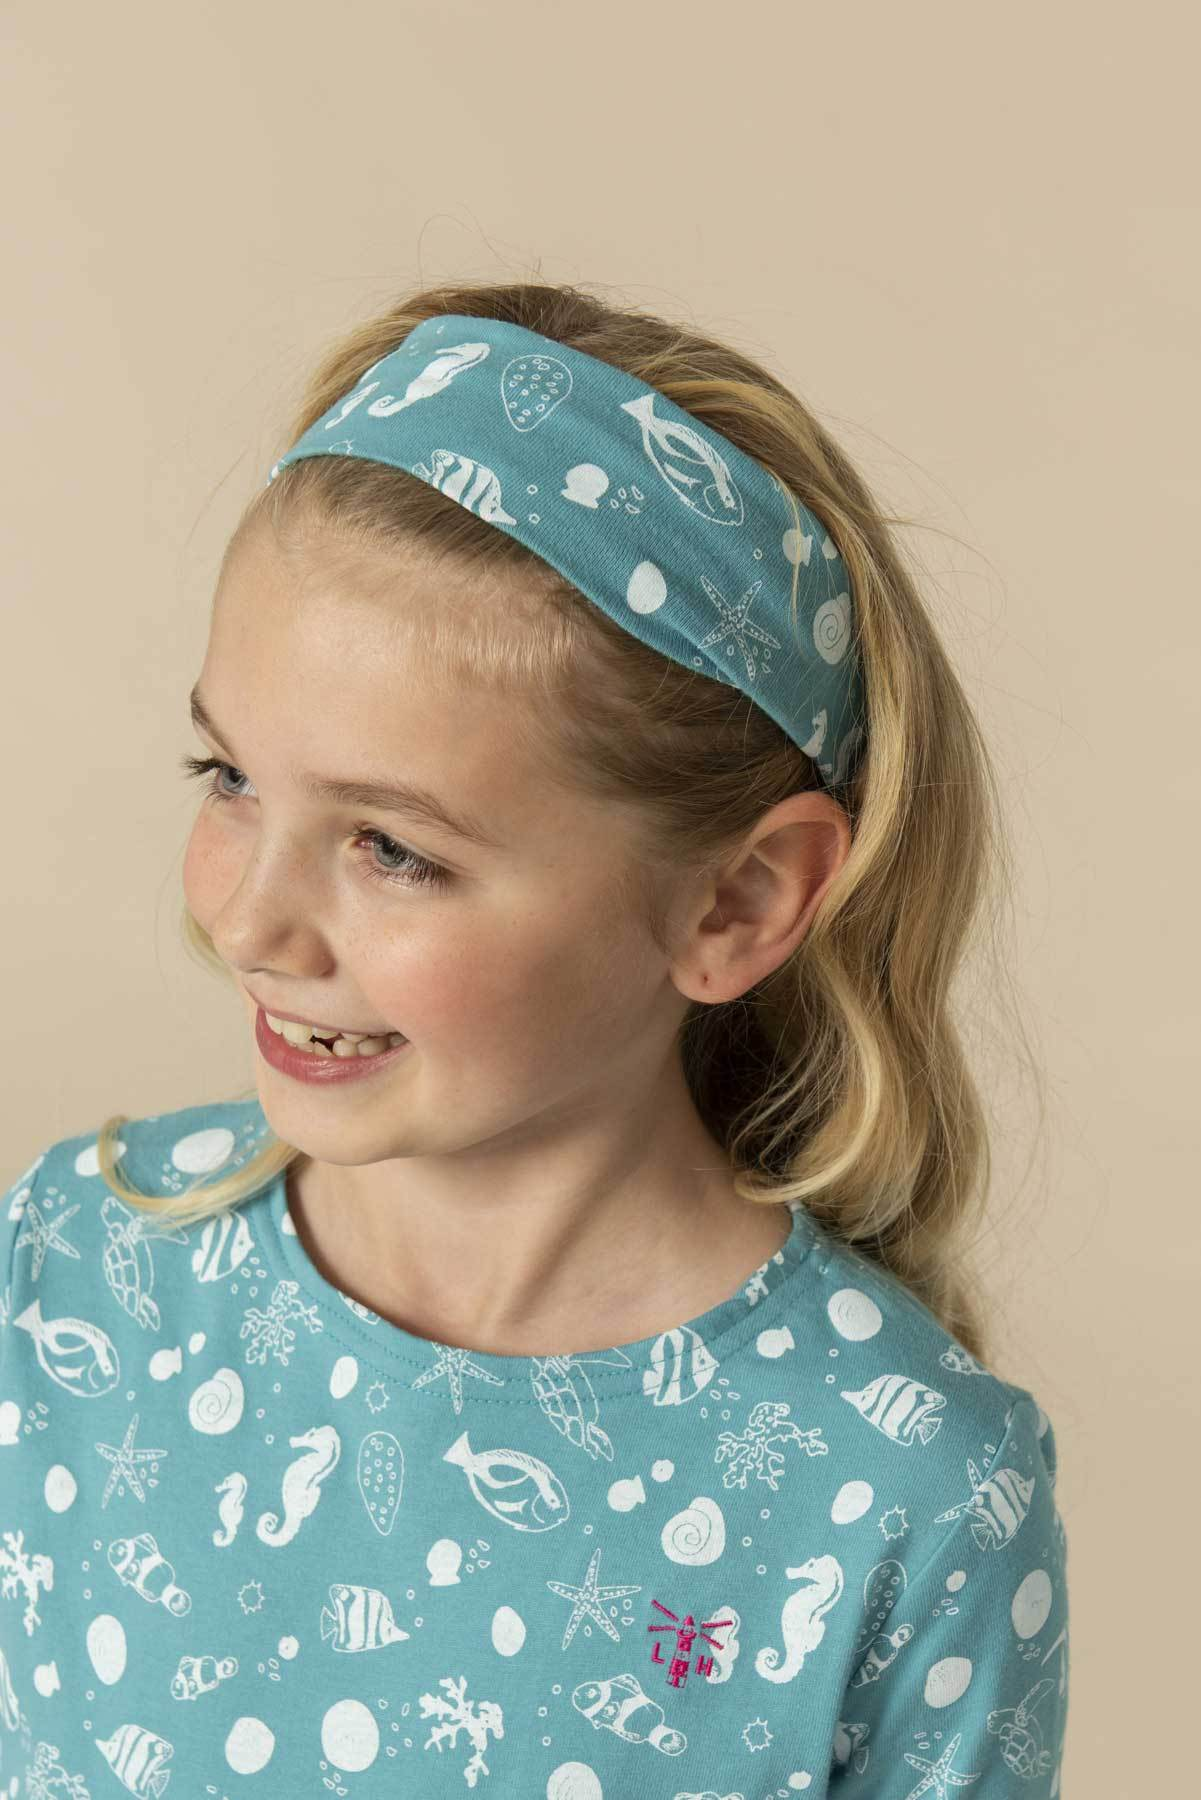 Girl's Accessories - Pack of 3 Headband - Pink Stripe, Mermaid, Seashell Print